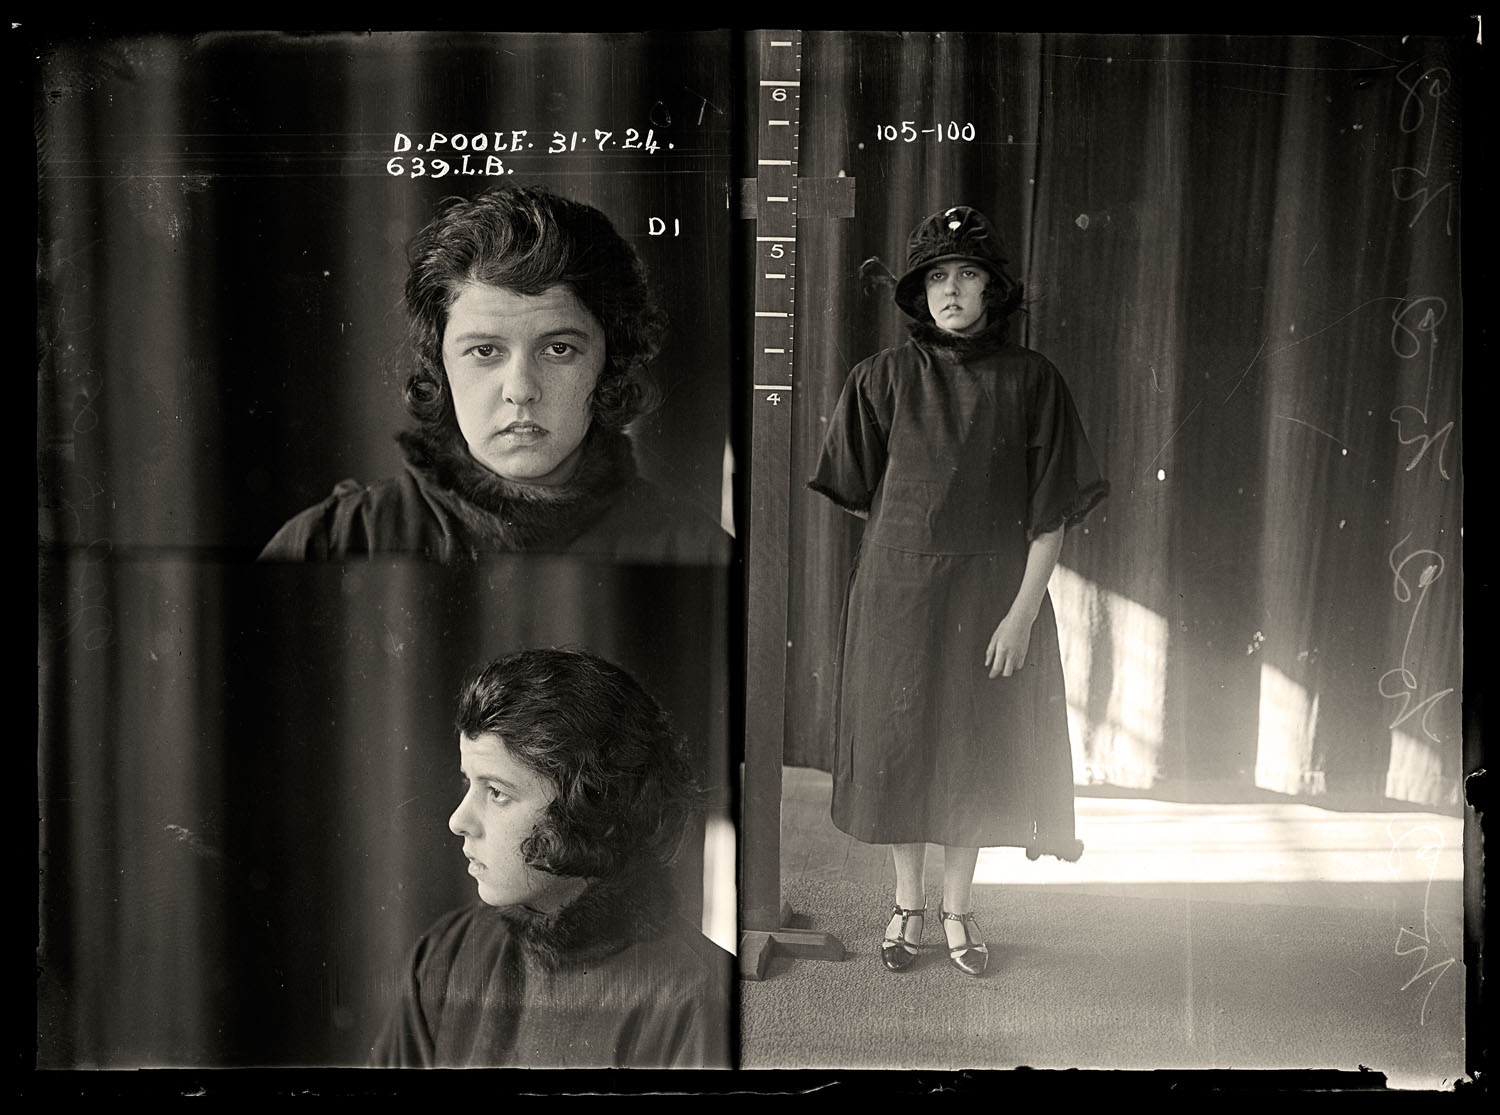 Doris Winifred Poole, criminal record number 639LB, 31 July 1924. State Reformatory for Women, Long Bay, NSW.